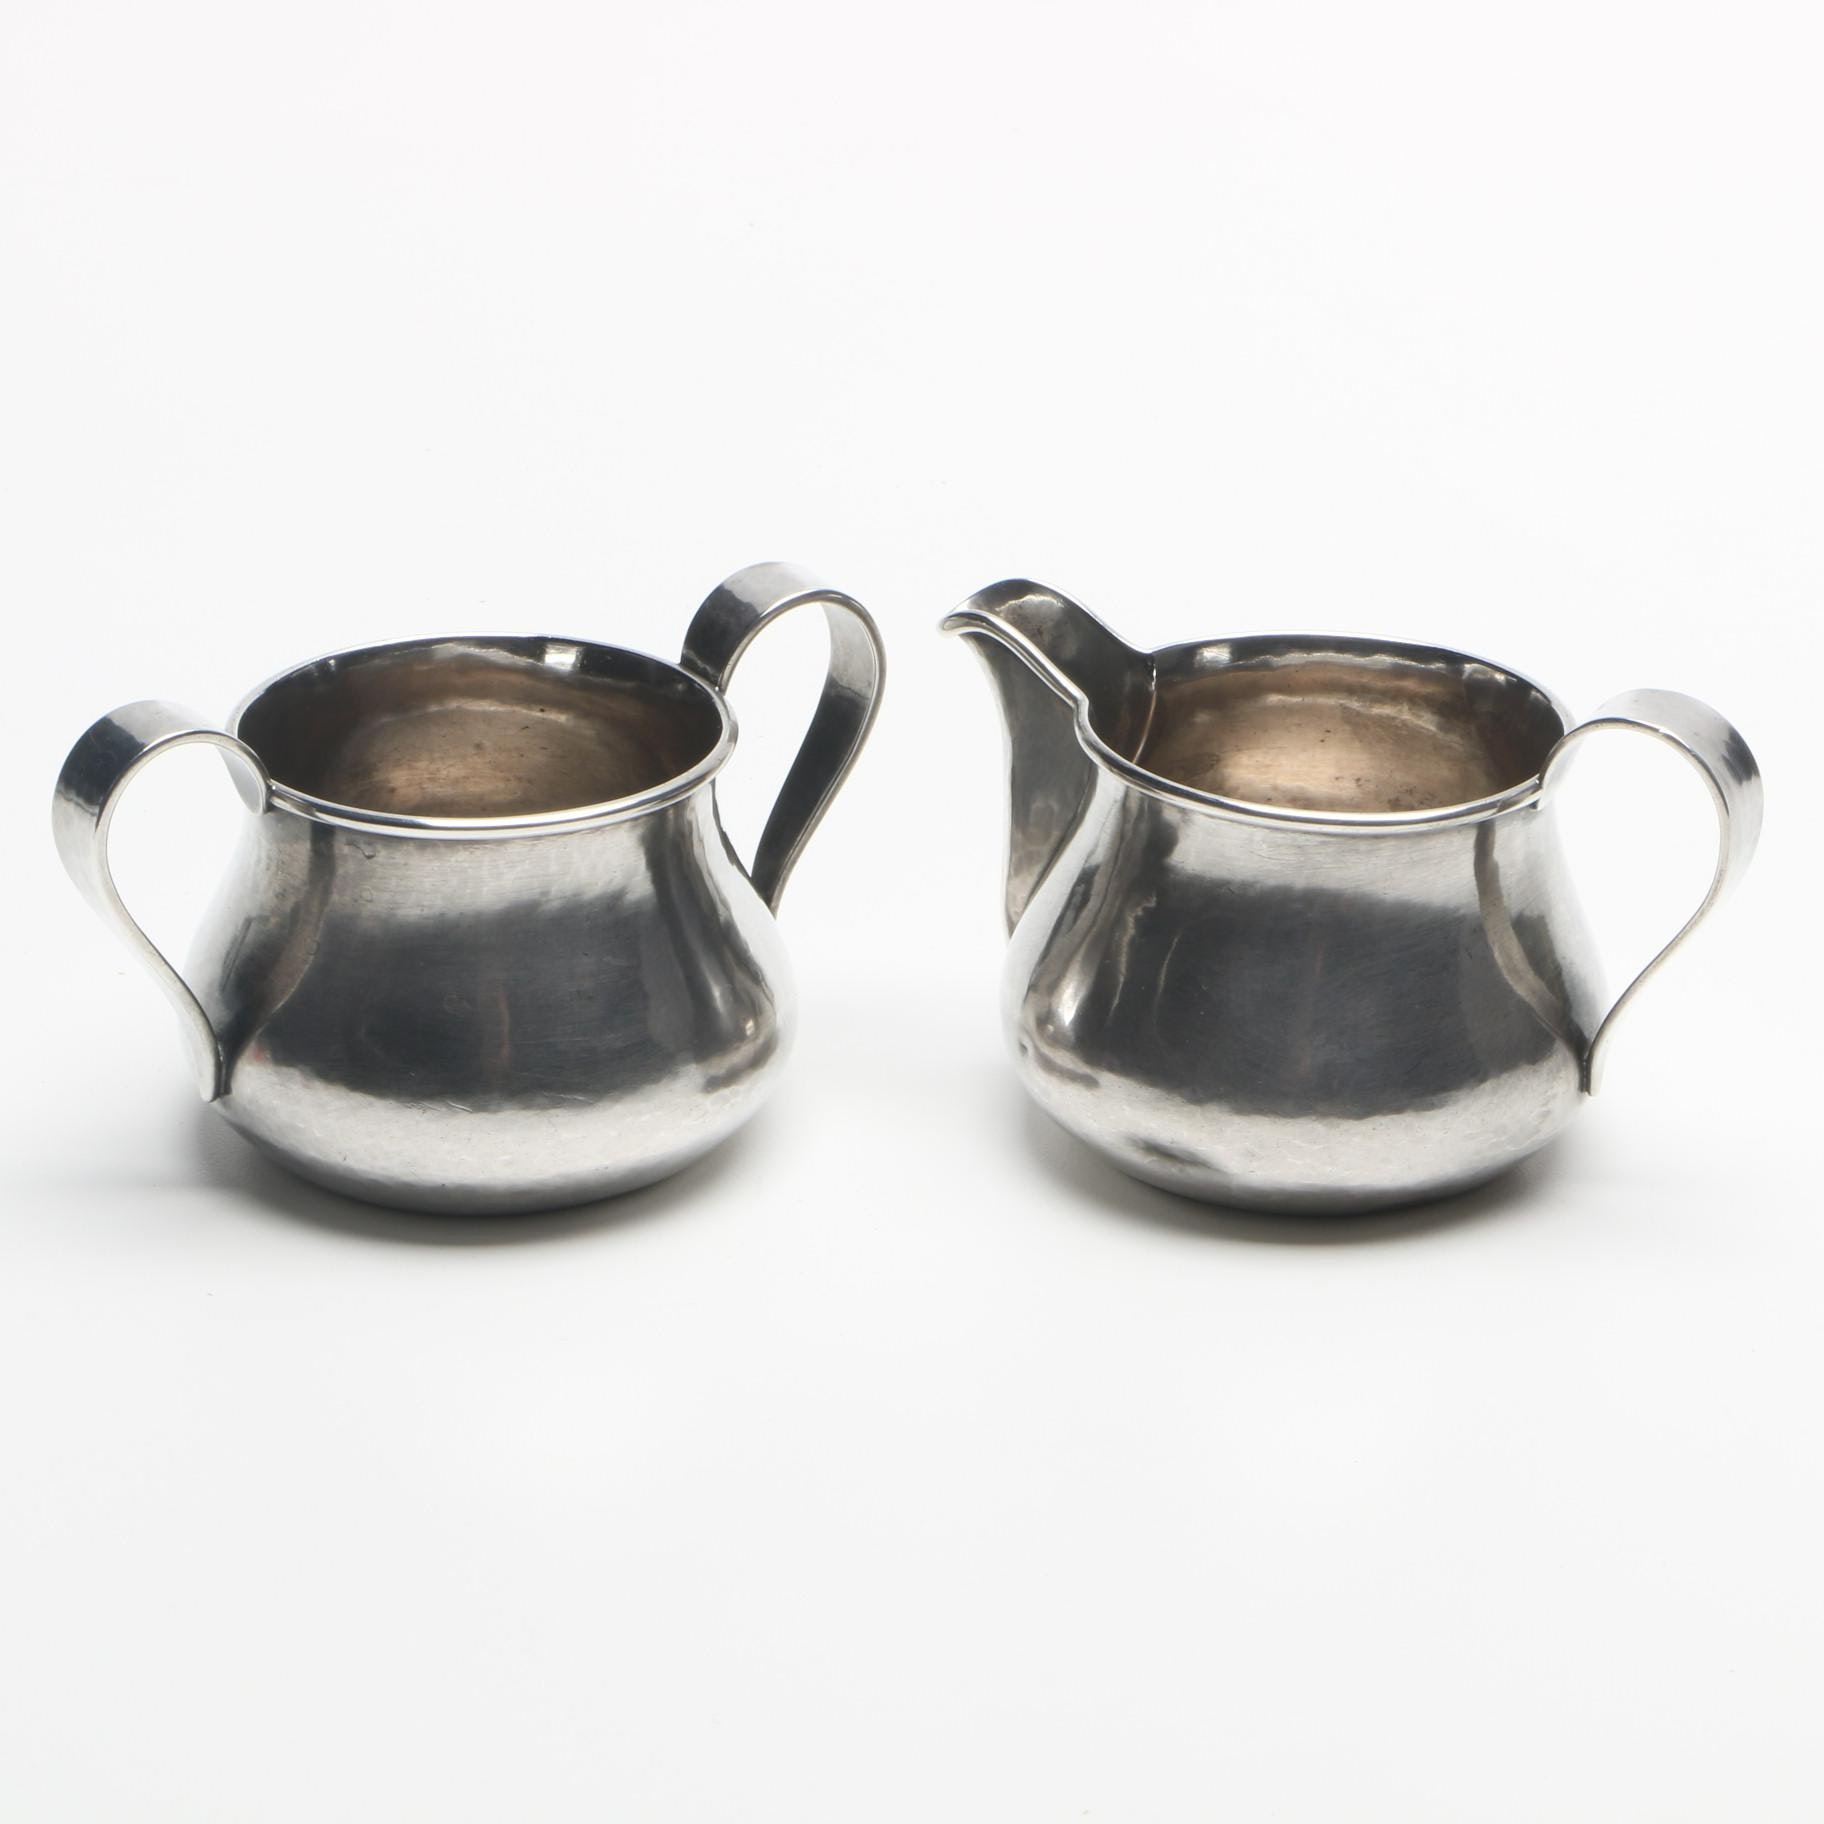 The Kalo Shop Hand Wrought Sterling Silver Creamer and Sugar Bowl